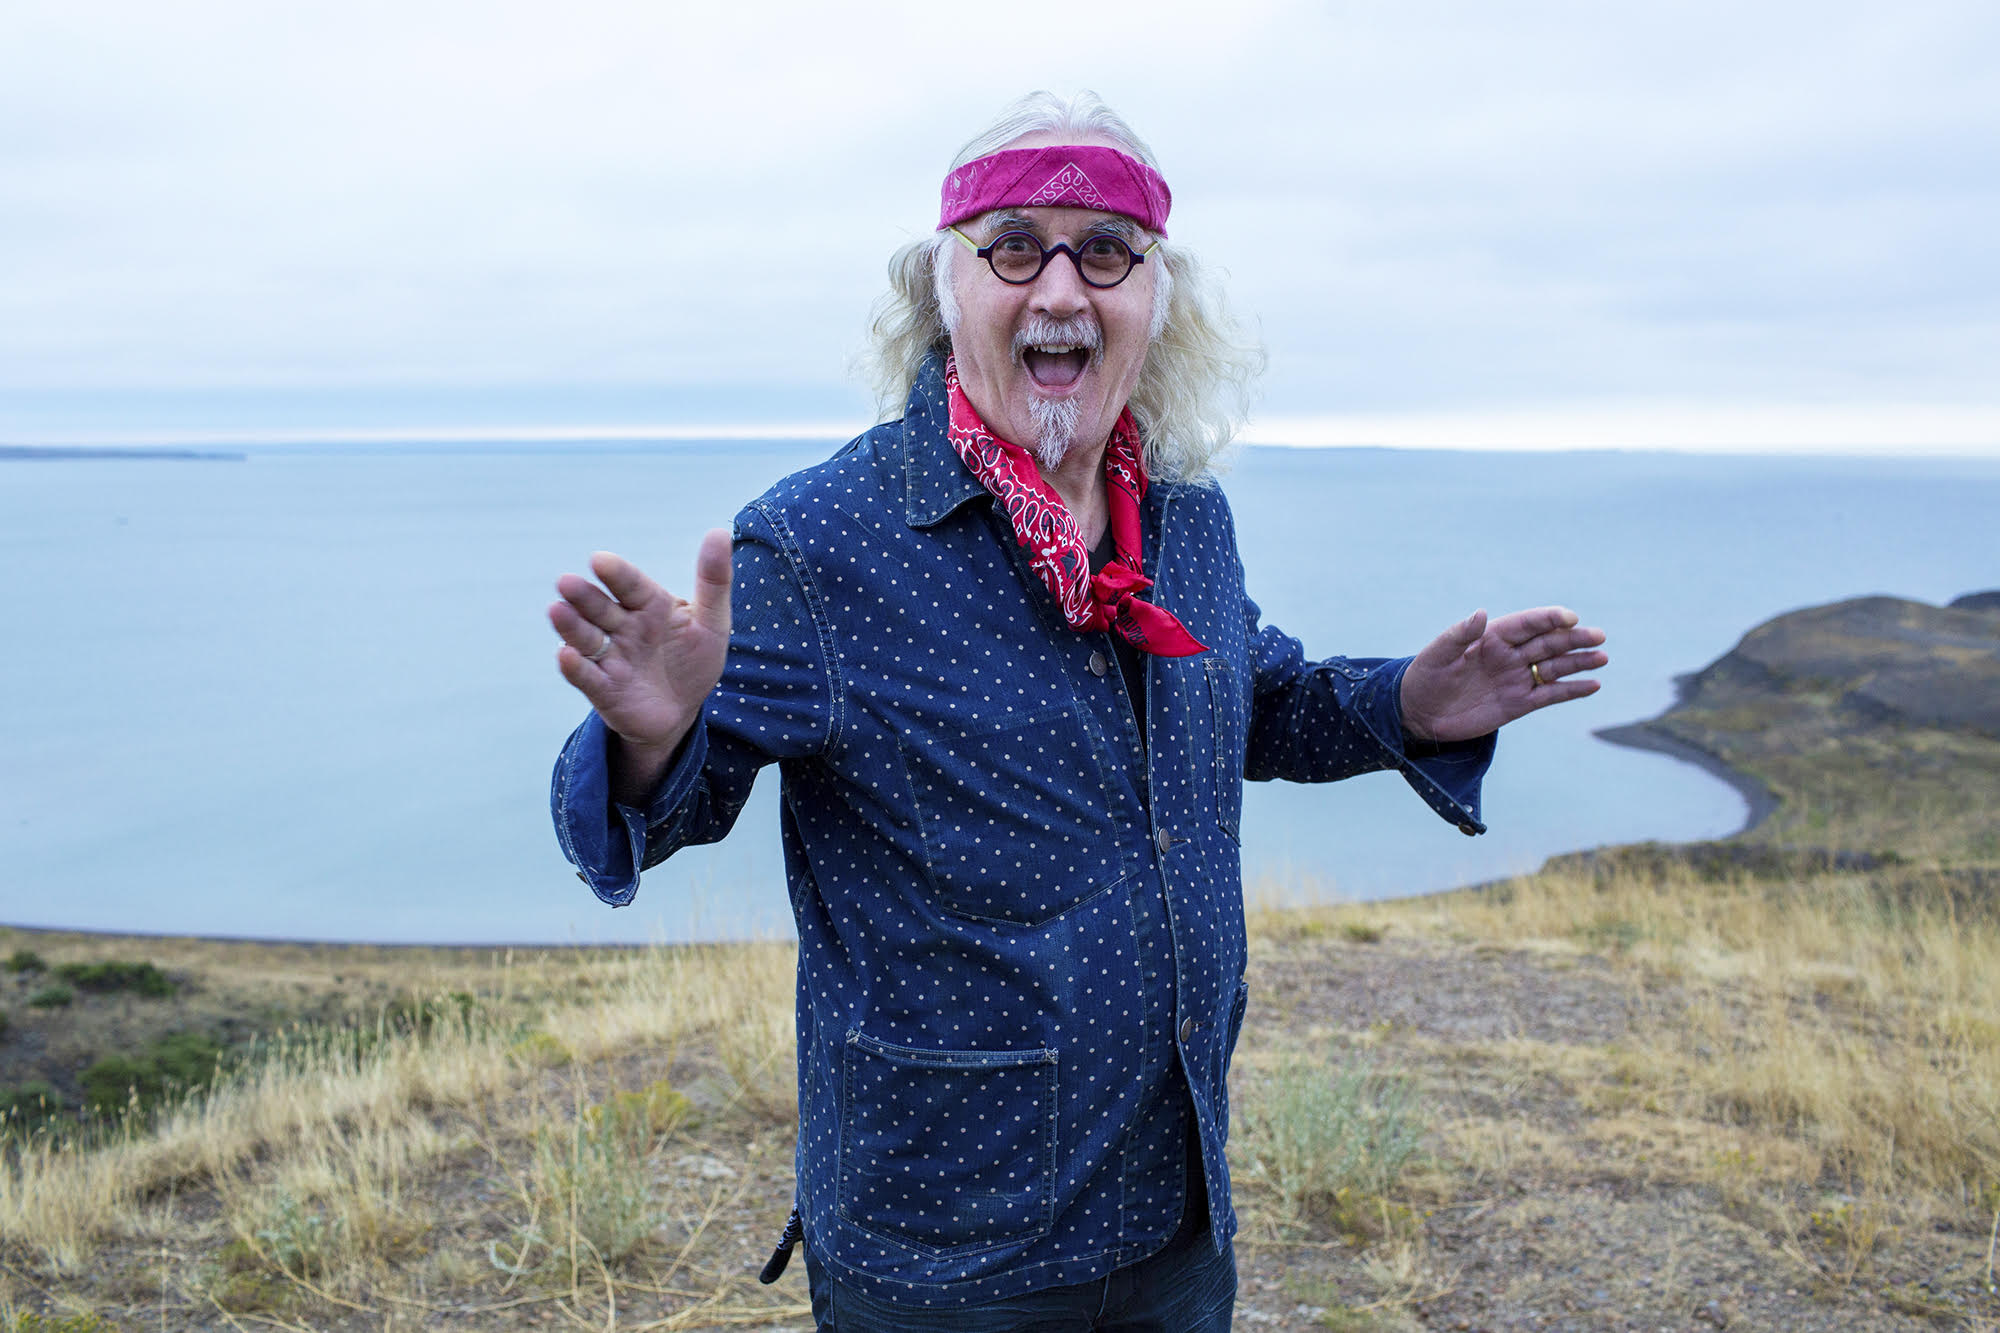 WATCH: Billy Connolly says he could support Scottish independence